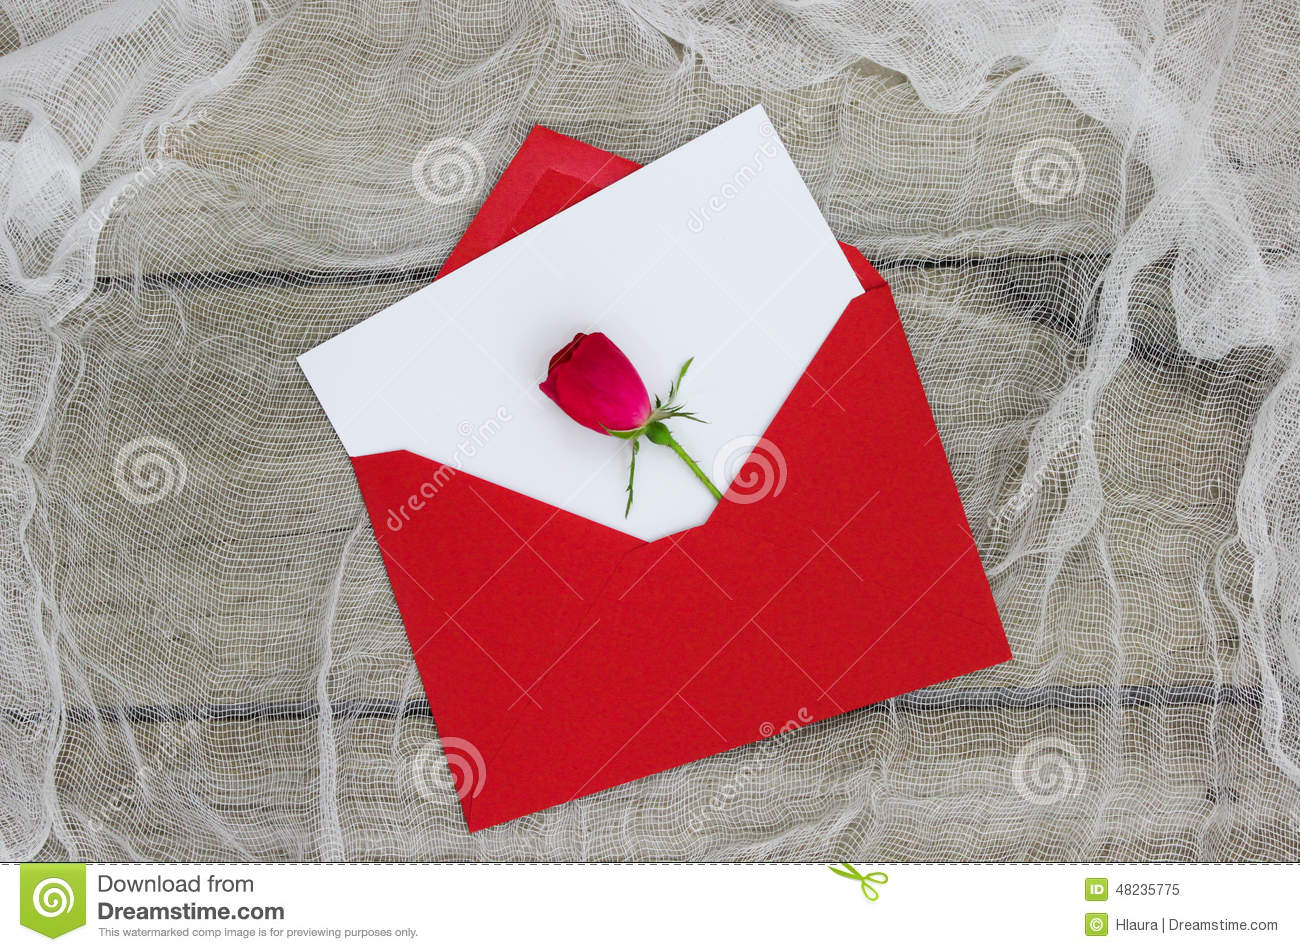 Blank White Love Letter And Red Envelope With Single Red Rose Stock Photo - Image: 48235775